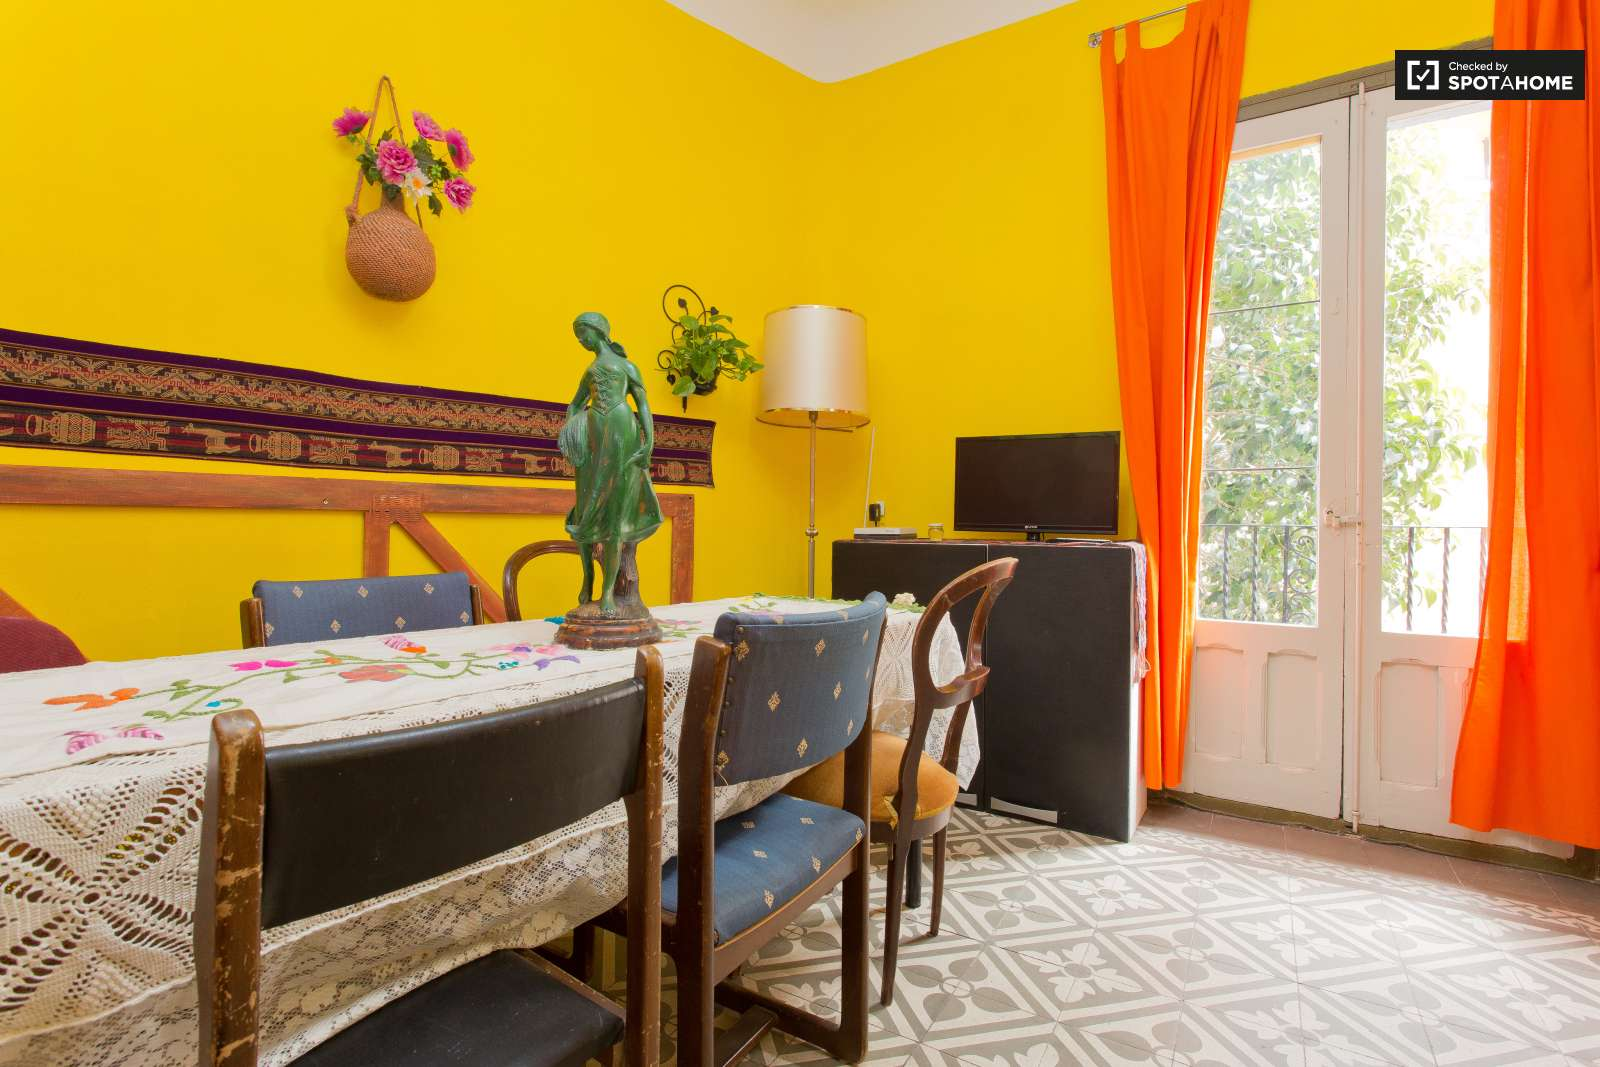 Furnished room in shared apartment in guindalera madrid for Furnished room